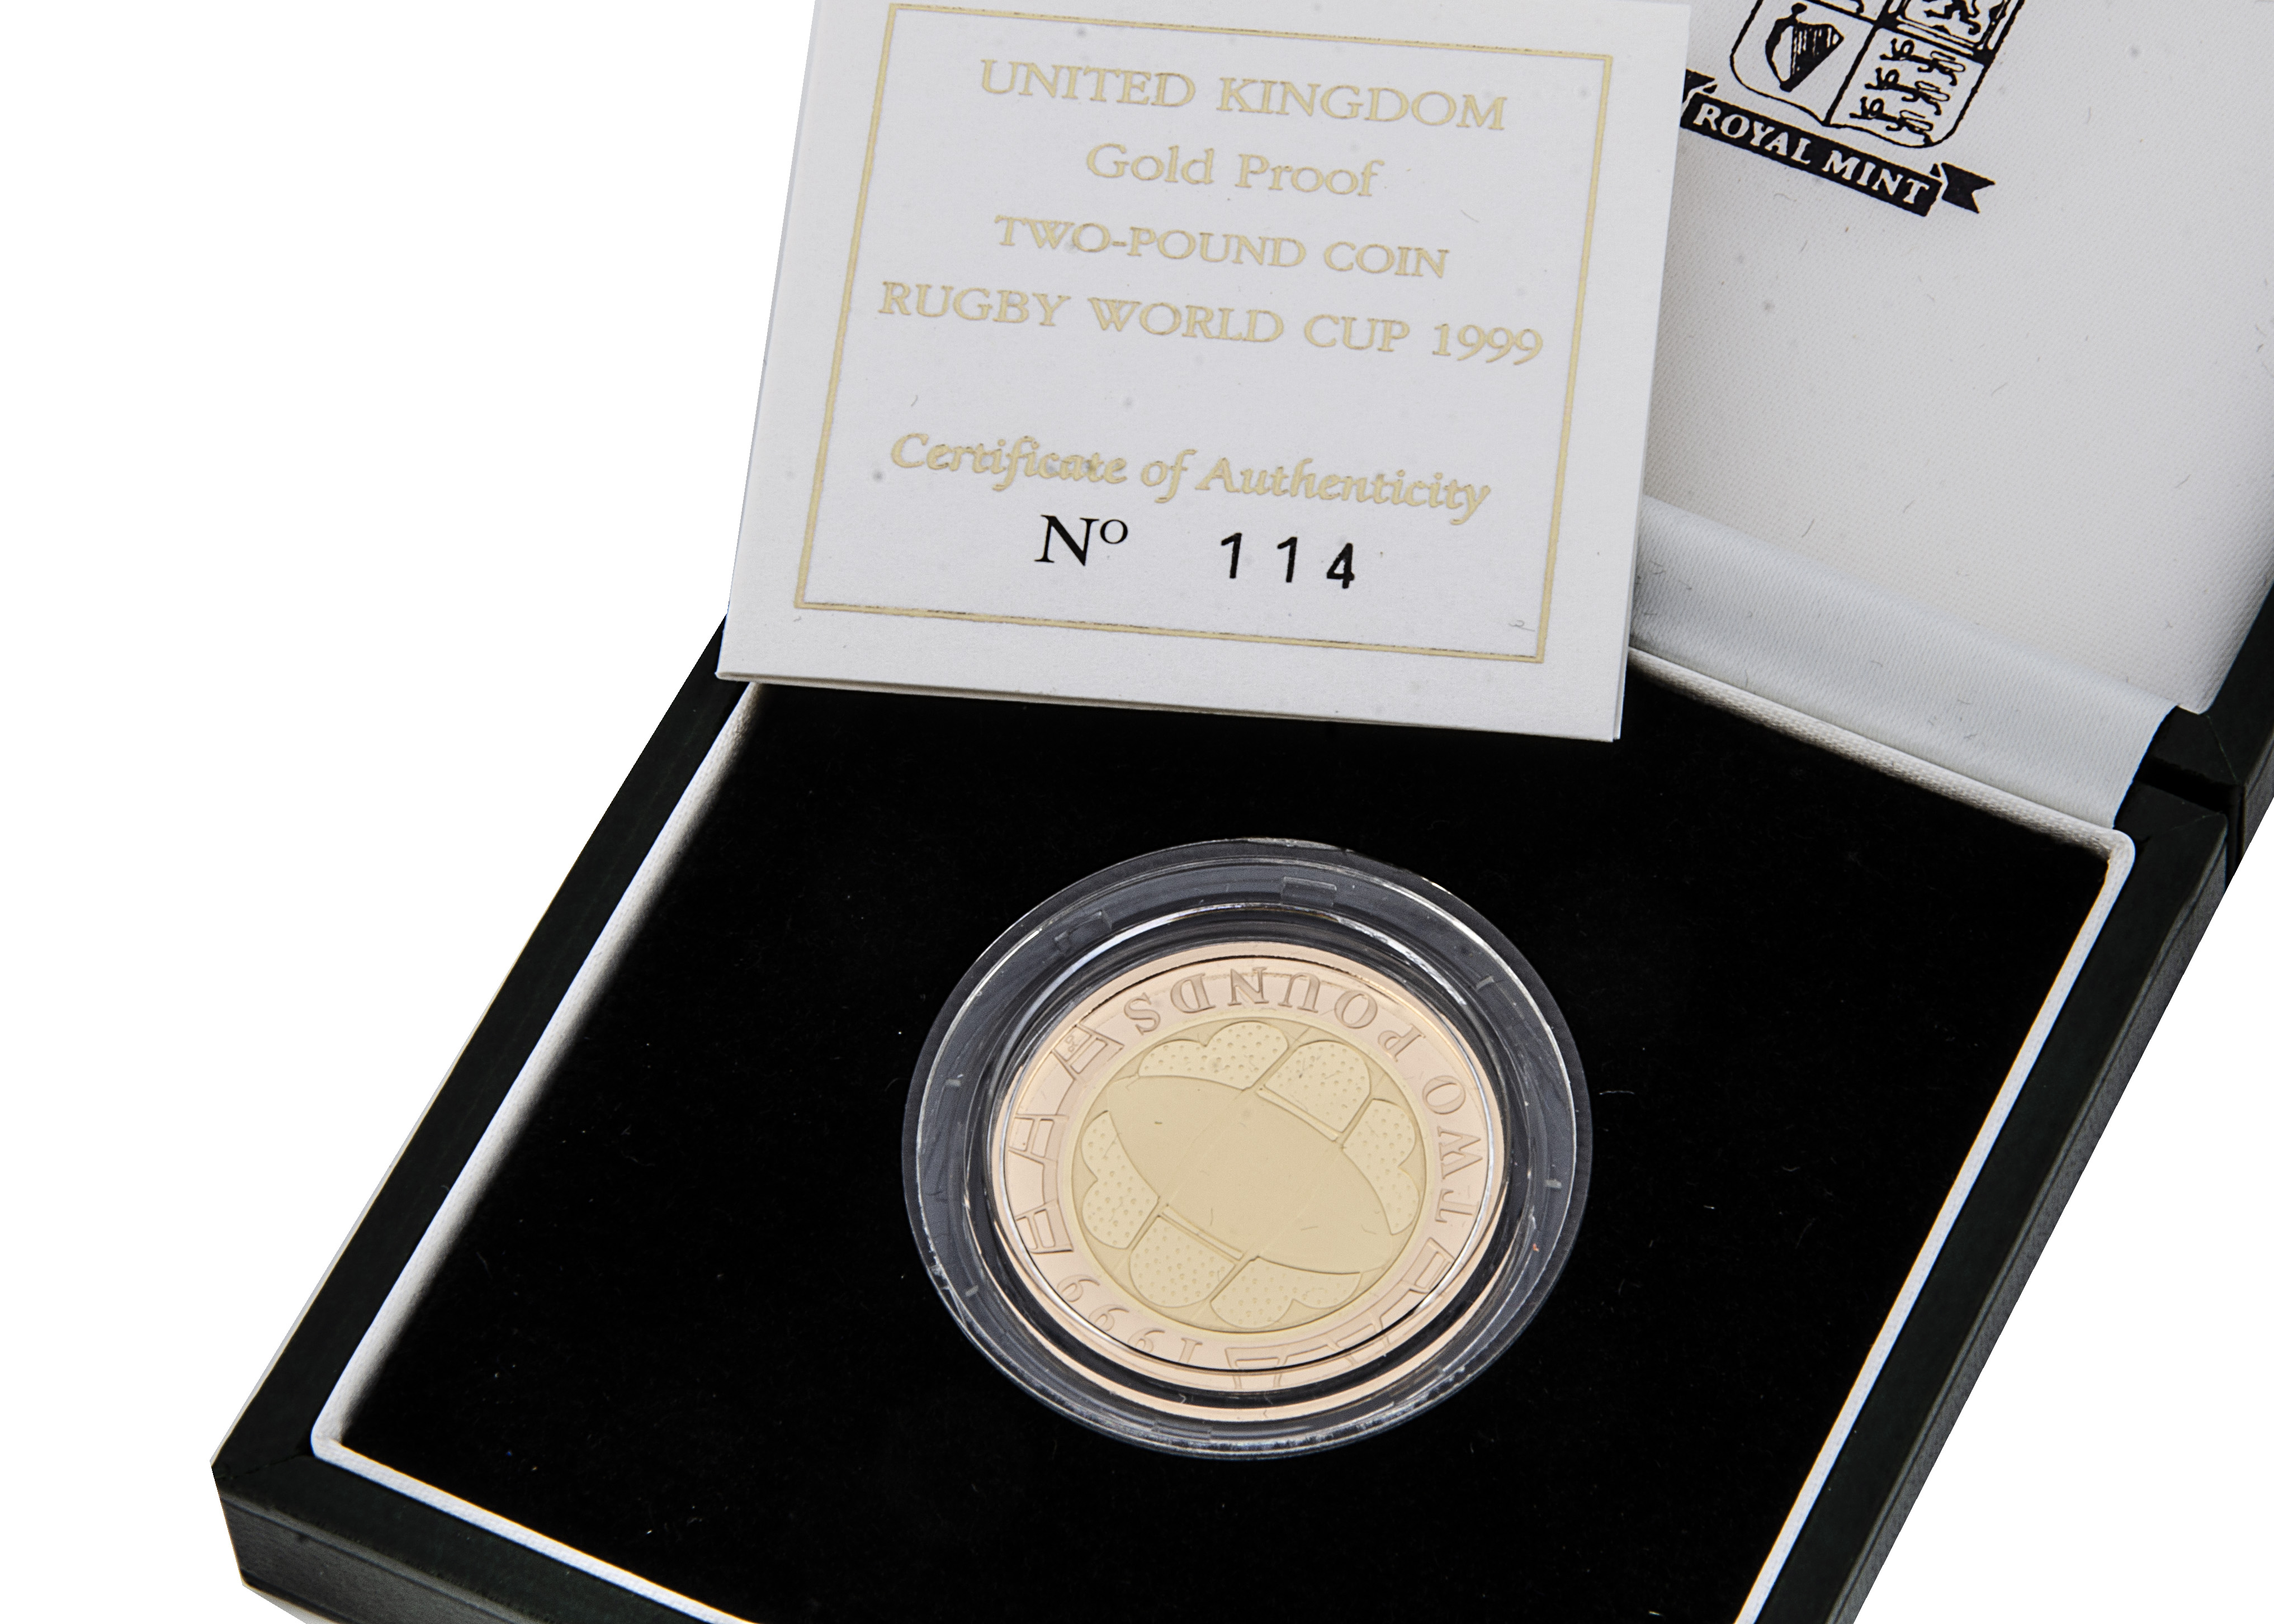 A modern Royal Mint UK Gold Proof Two Pound Coin, 1999, in box with certificate, 15.98g, celebrating